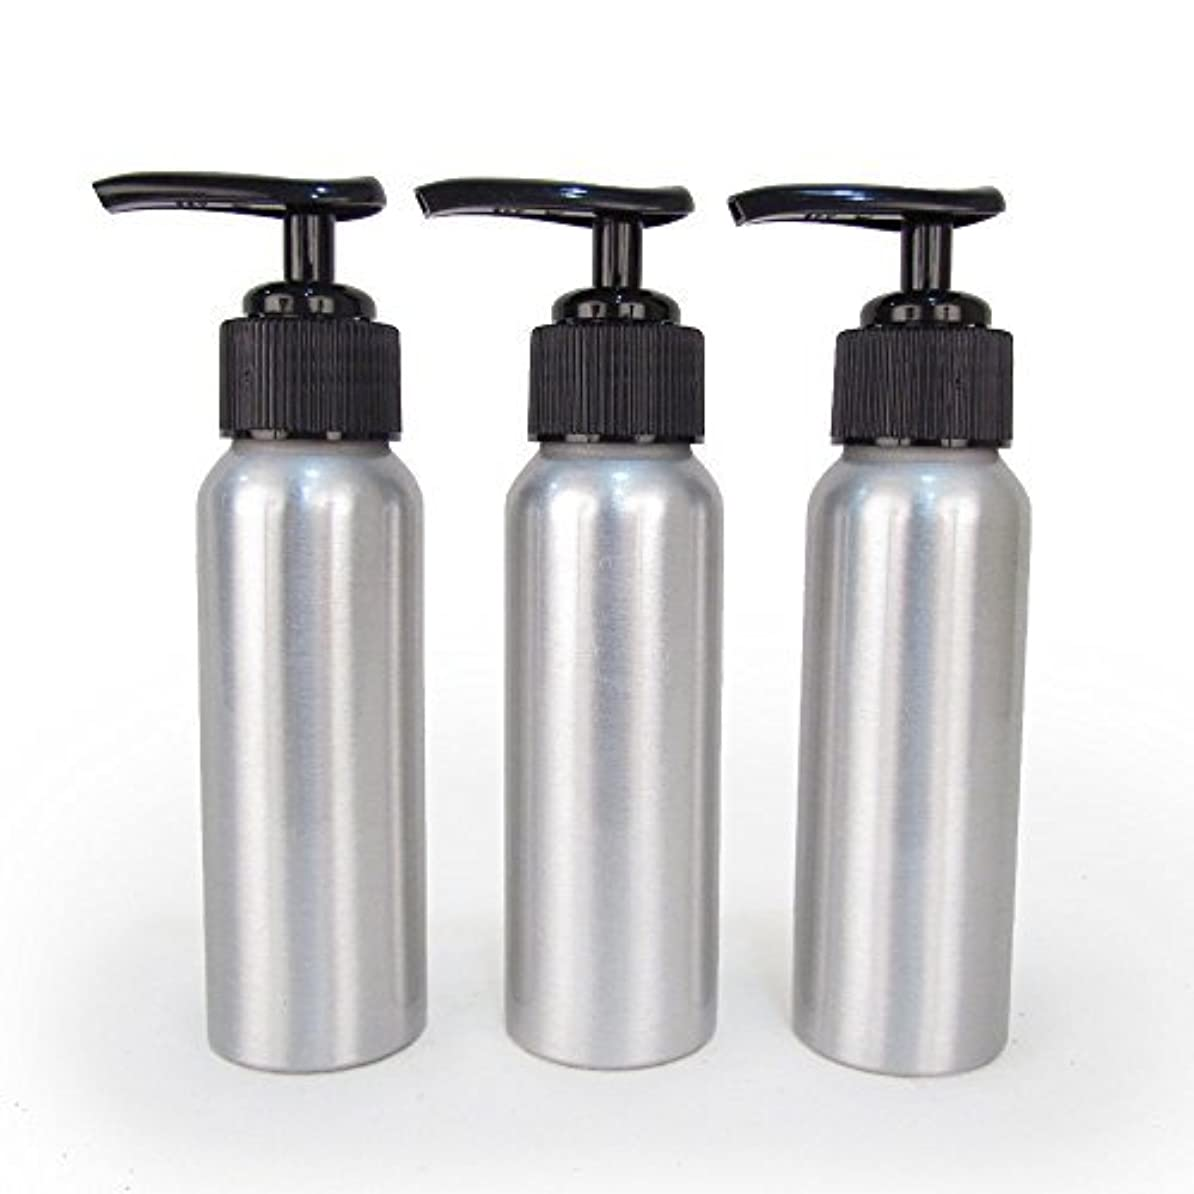 くしゃみバッジネーピアSet of 3 - Slender Brushed Aluminum 2.7 oz Pump Bottle for Essential Oil Products by Rivertree Life [並行輸入品]